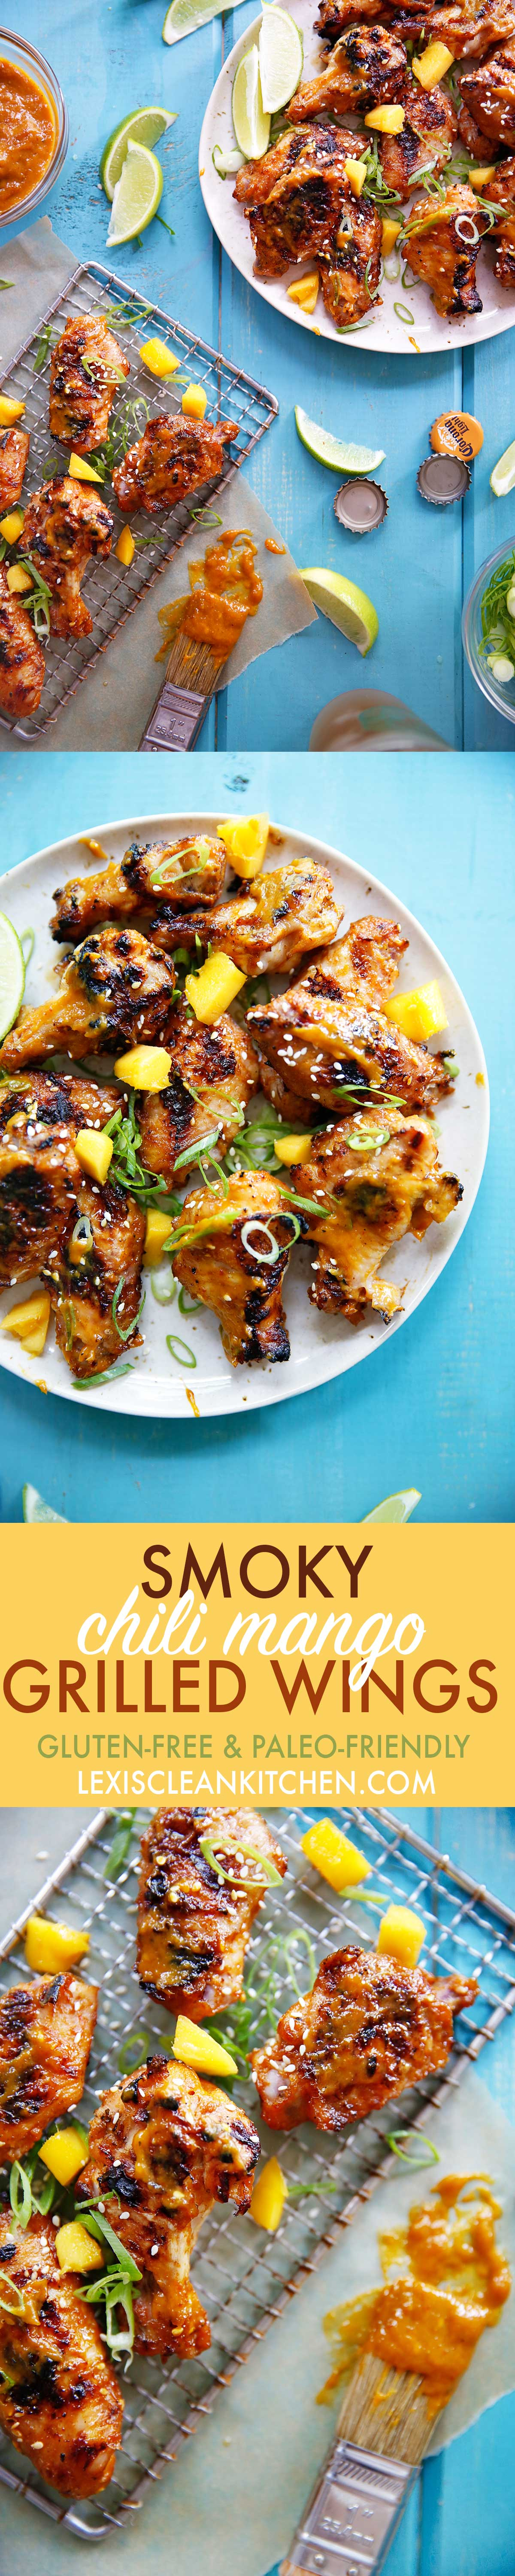 Chili Mango Wings | Lexi's Clean Kitchen